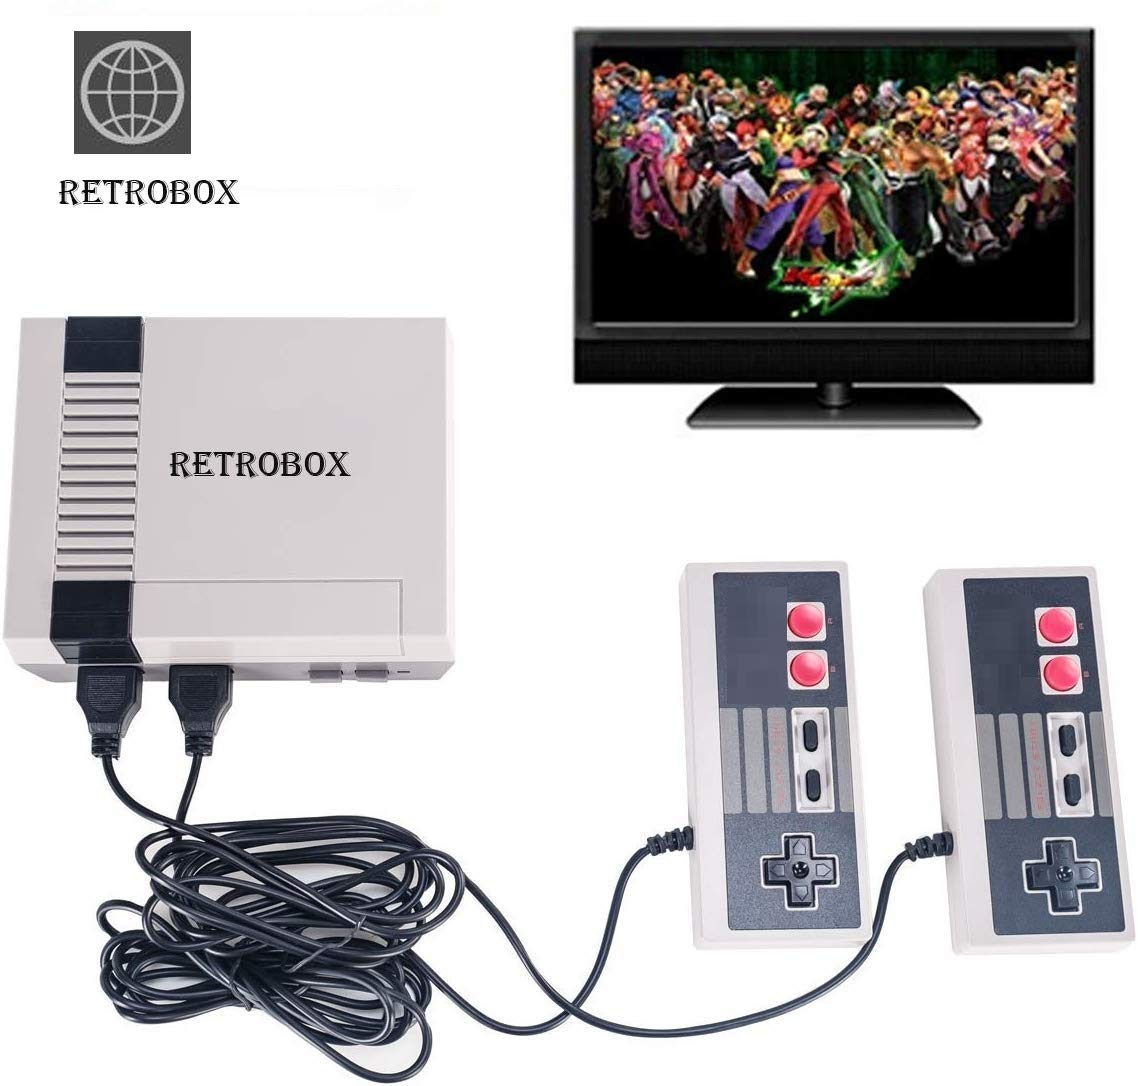 Retro Classic Game Console Retro Childhood Game Classic Game Consoles Built-in 620 Childhood Classic Game Dual Control 8-Bit Console Handheld Game Player Console for Classic Games Family TV Video by RetroBox (Image #8)